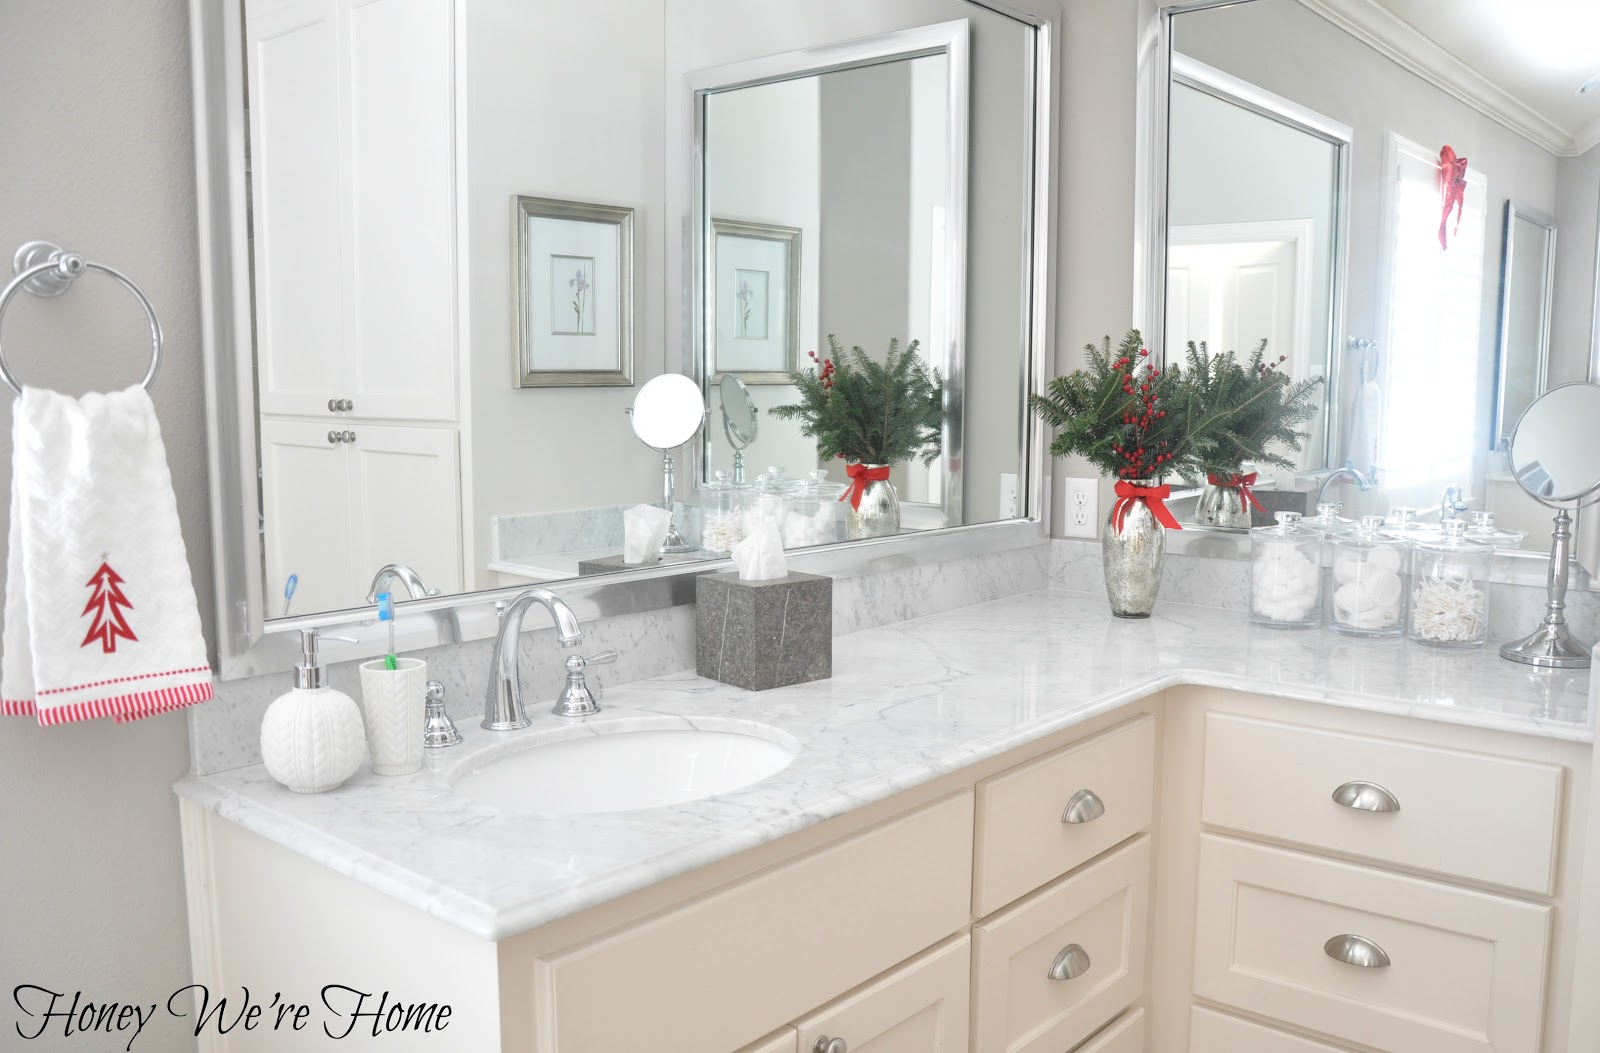 Target Holiday Accessories in the Bathroom | Honey We\'re Home